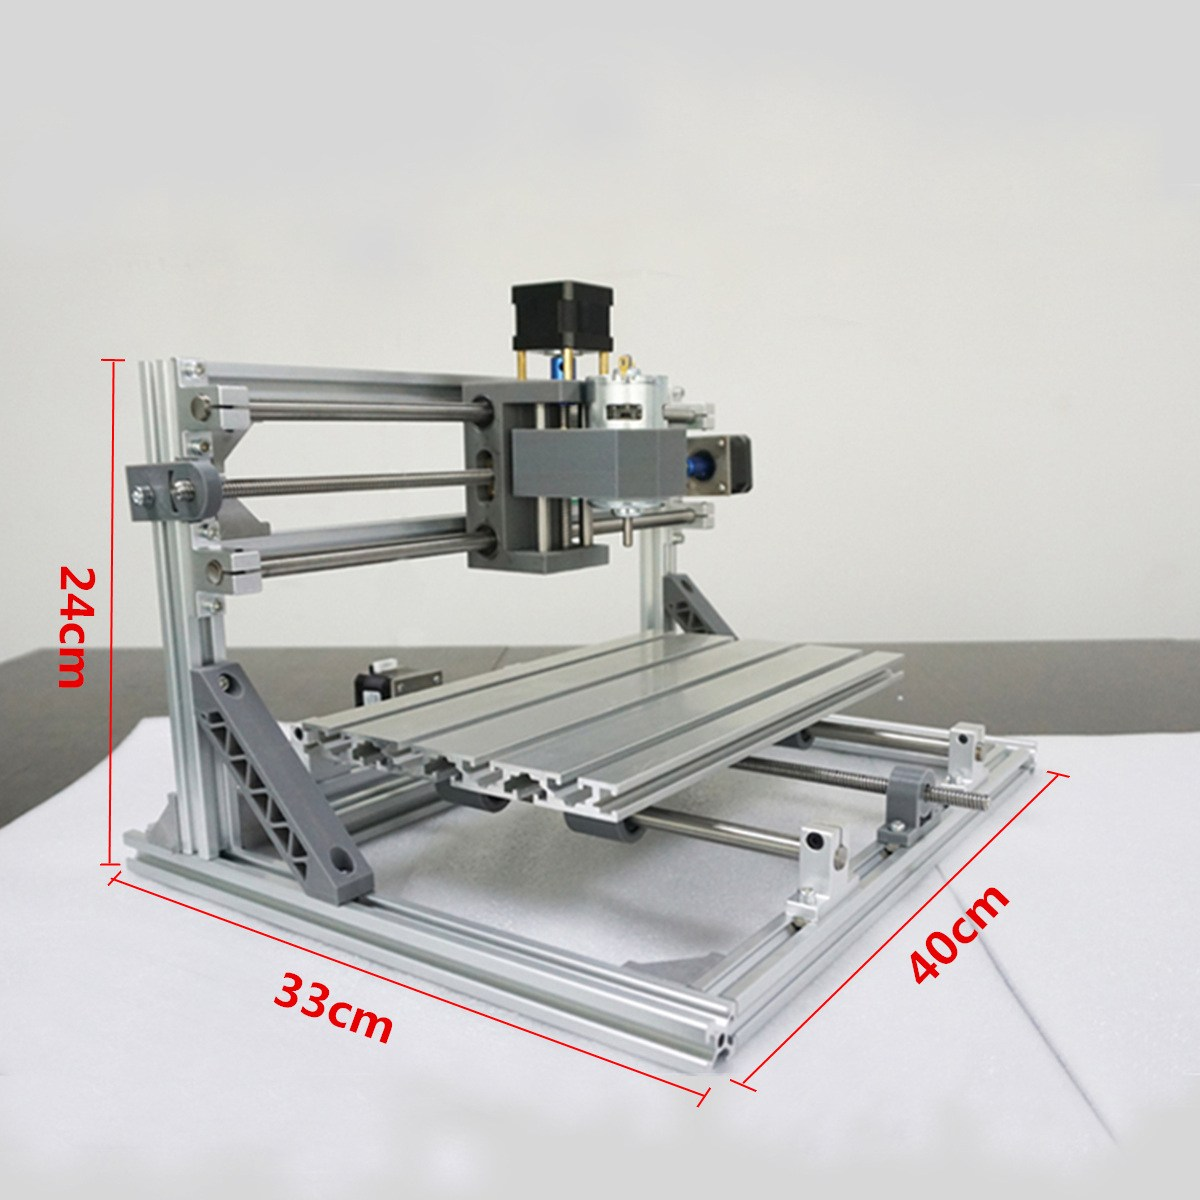 DIY 3018 CNC Router ER11 GRBL Control Diy CNC Machine,3 Axis PCB Milling Machine,Wood Router Laser Engraving daniu 3018 3 axis grbl control 500mw laser diy cnc router milling engraving machine working area 30x18x40cm